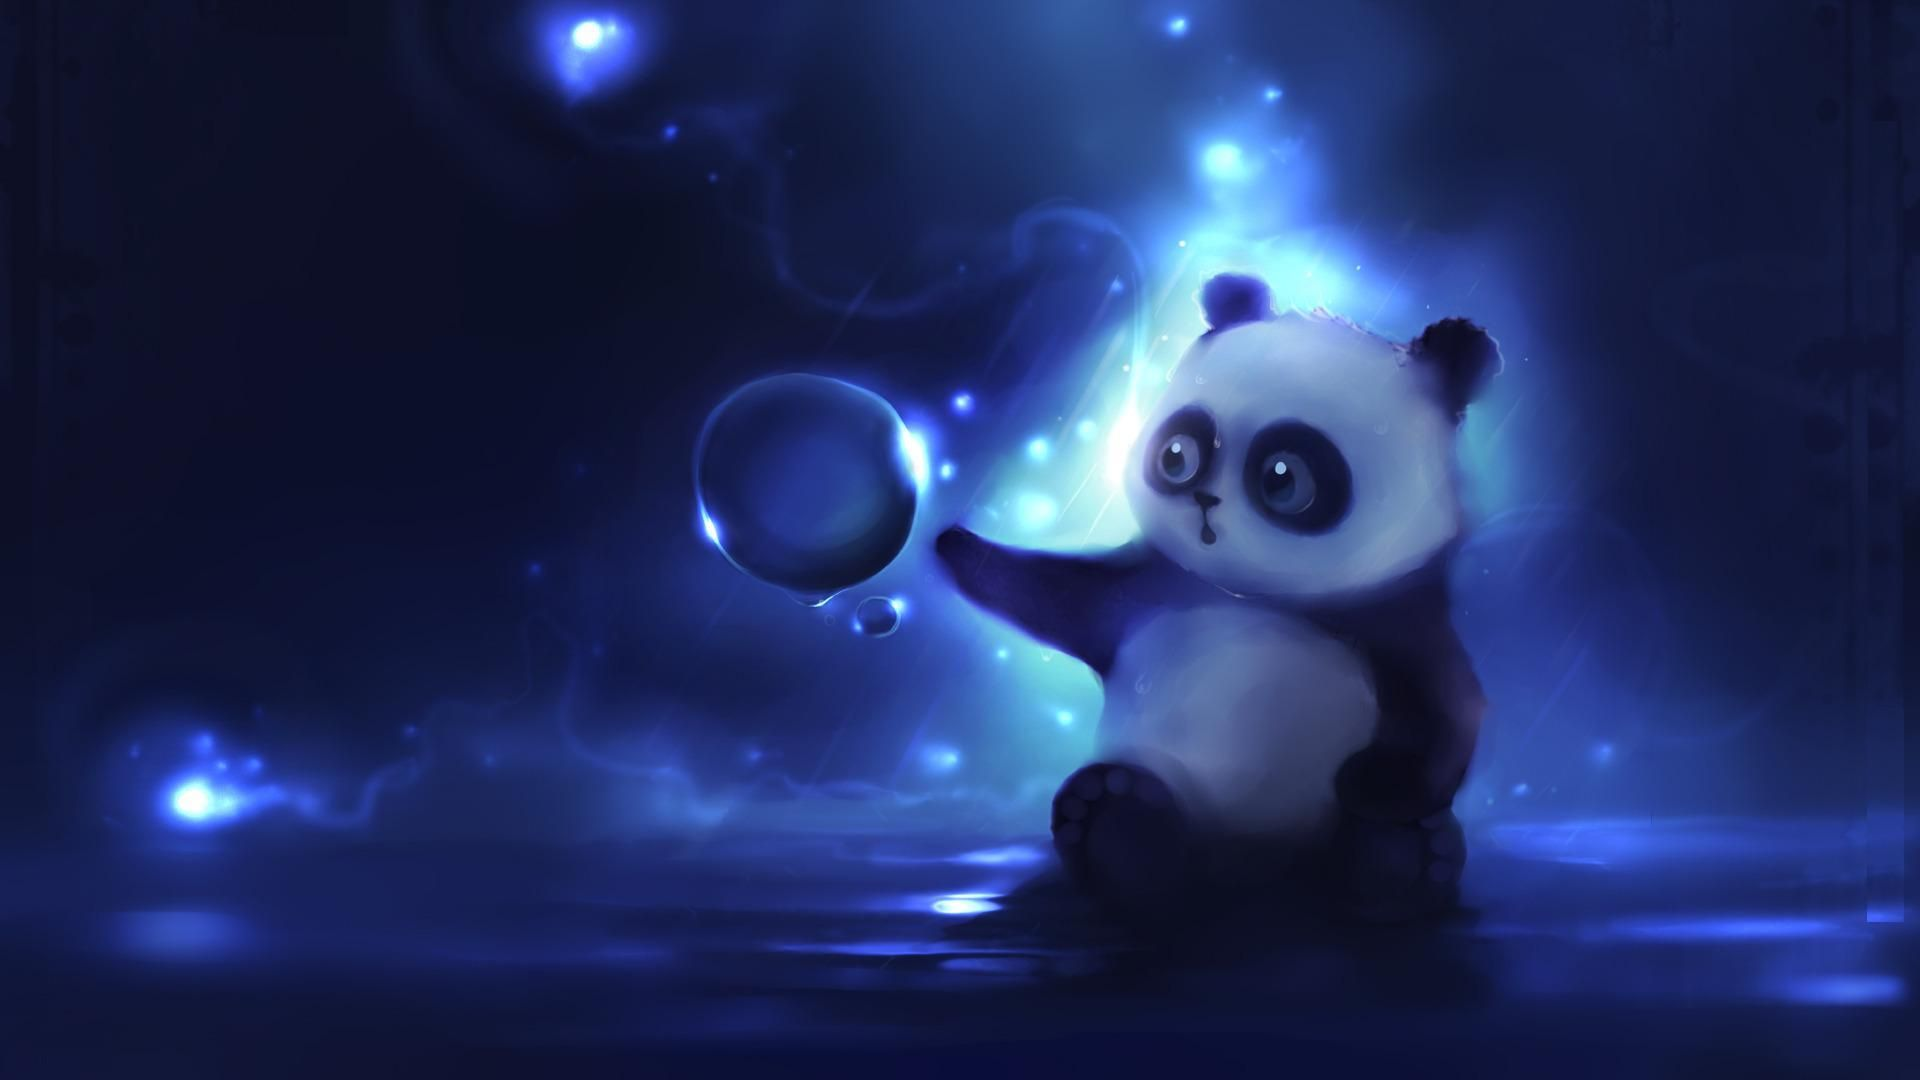 Animated Moving Wallpapers For Desktop Cute Panda Cartoon Cartoon Wallpaper Panda Wallpapers